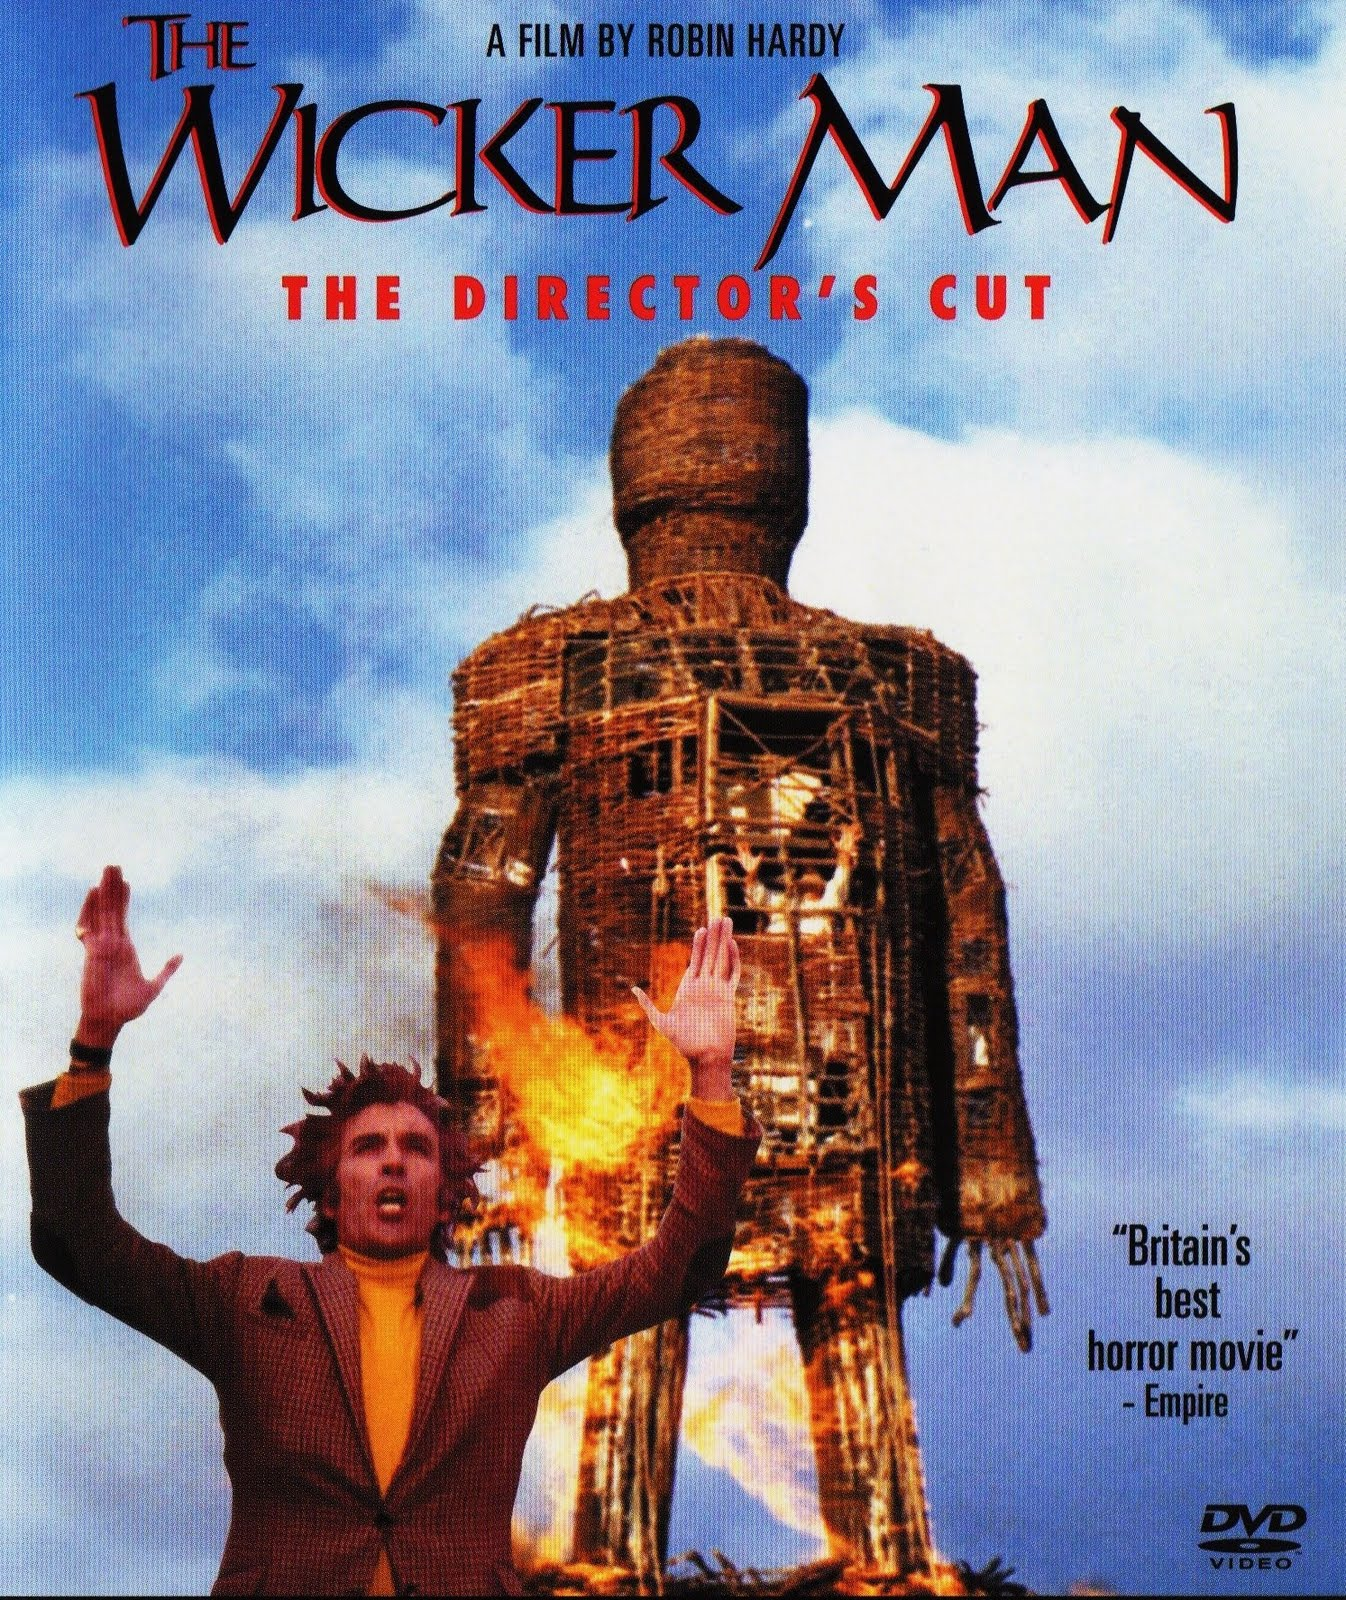 https://i0.wp.com/www.elpelicultista.com/wp-content/uploads/2014/05/wicker-man-poster.jpg